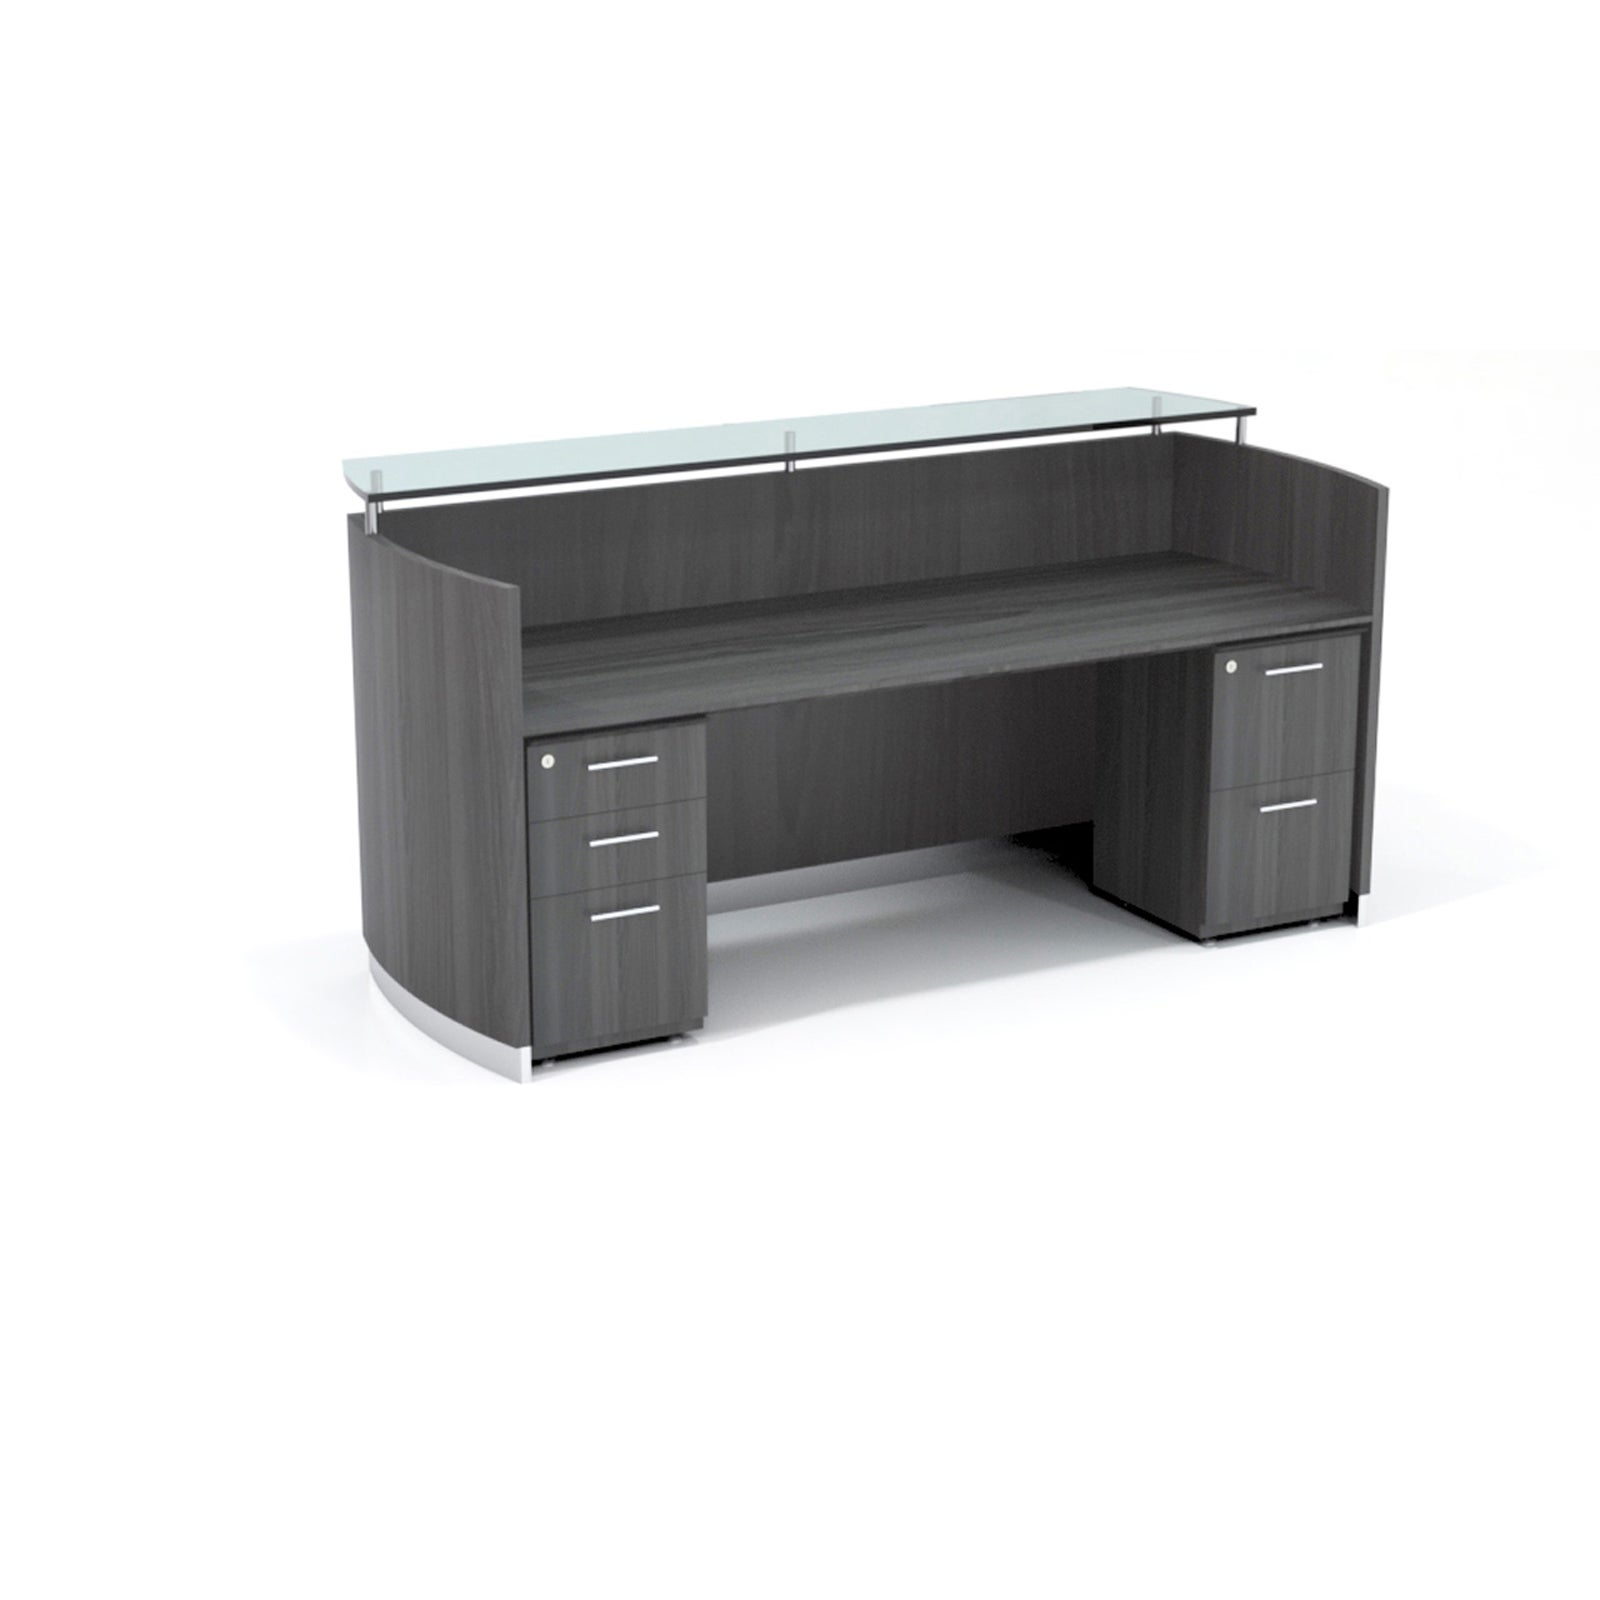 mayline handed today series desk product furniture home garden inch medina reception return overstock shipping free non